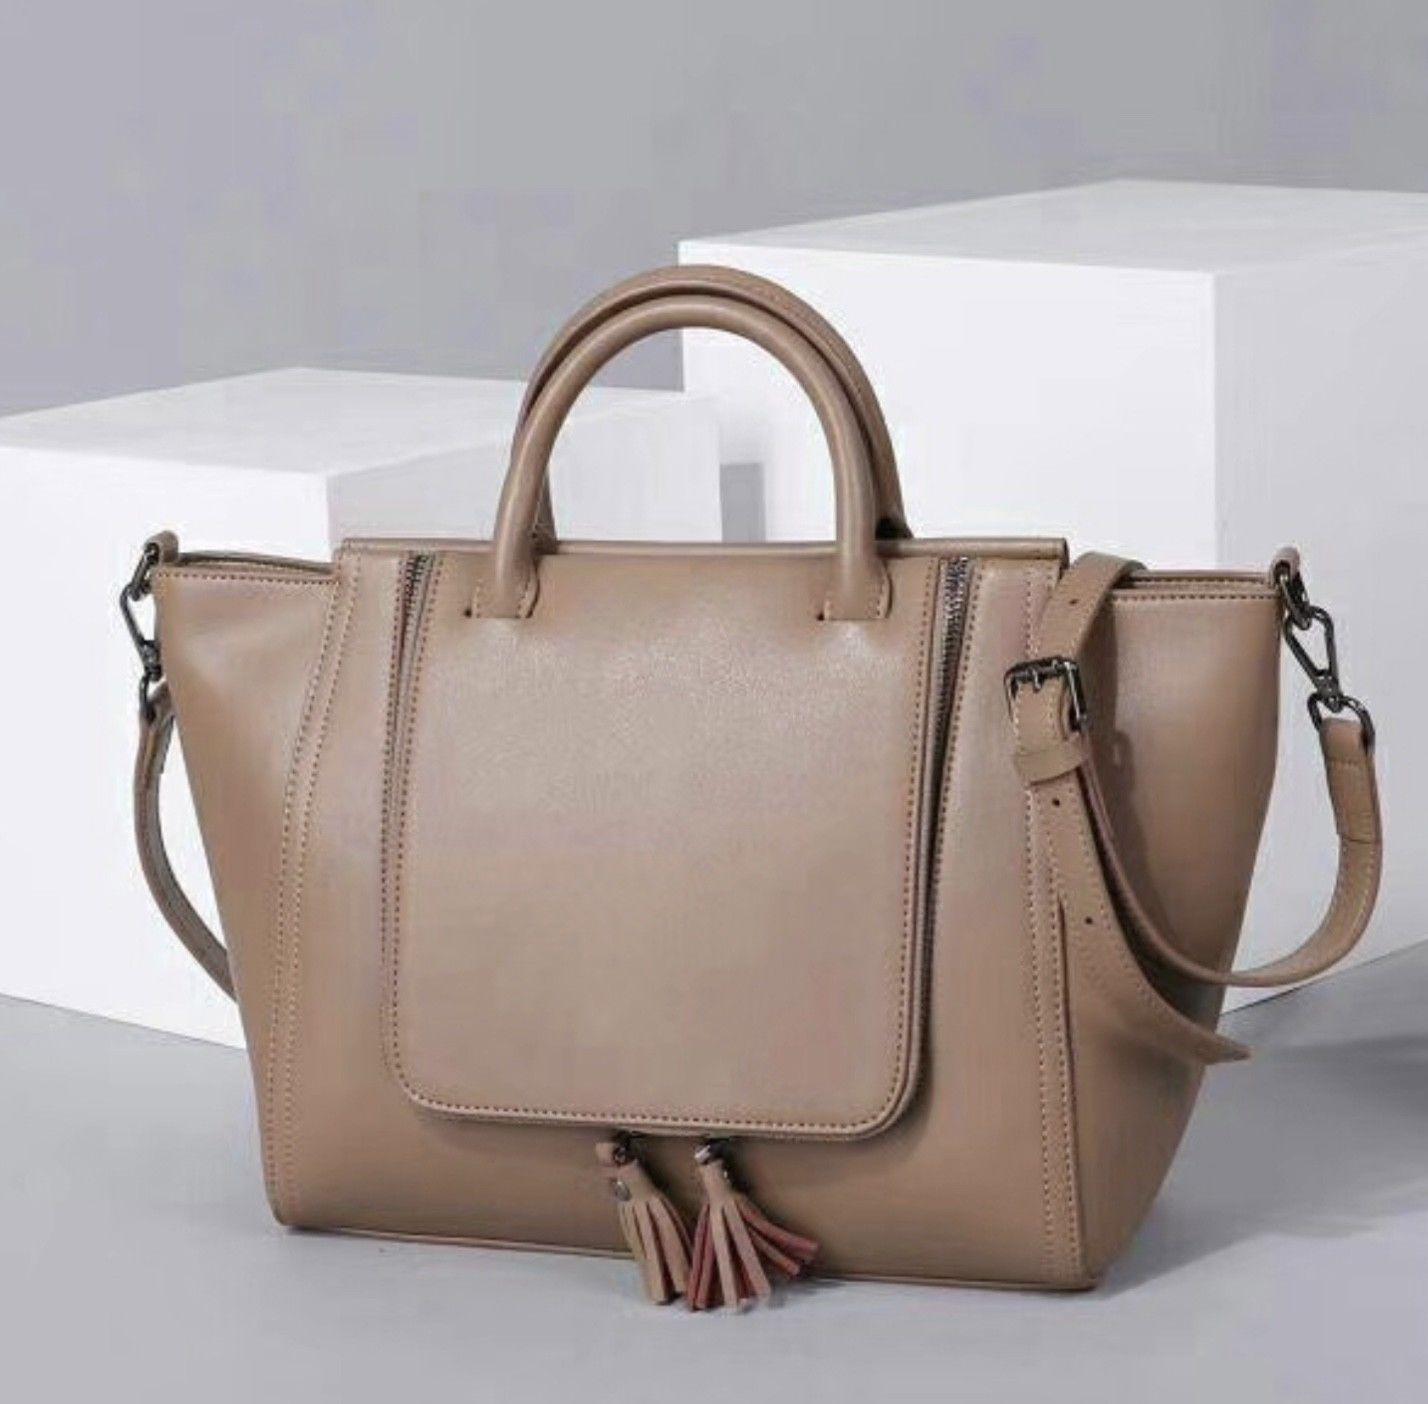 New Smooth Italian Leather Camel Brown Winged Satchel Handbag